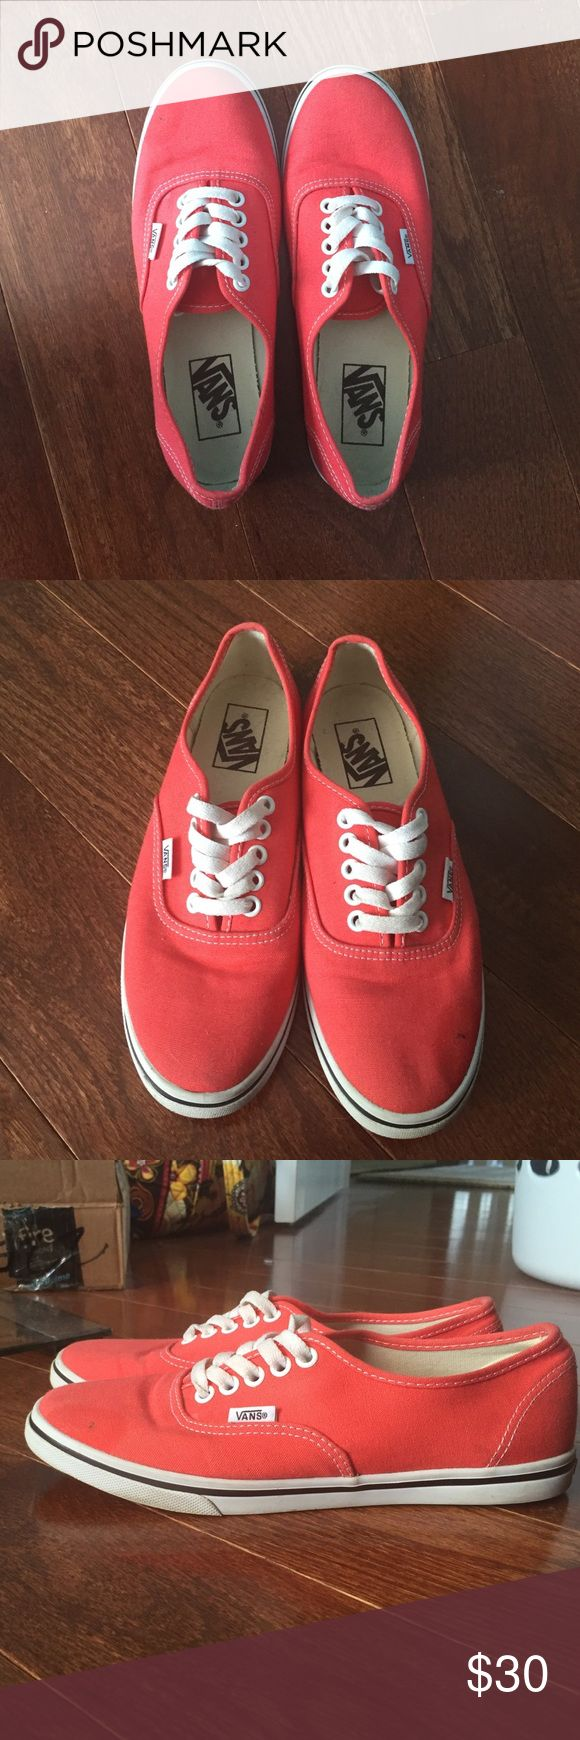 Vans coral pink Lo Pro shoes Authentic Vans Lo Pro classic shoes in coral pink. Size 6 men's, 7.5 women's. Great condition. Only worn a few times. Very minimal wear and tear. Great for adding a pop of color to your outfits! Vans Shoes Sneakers